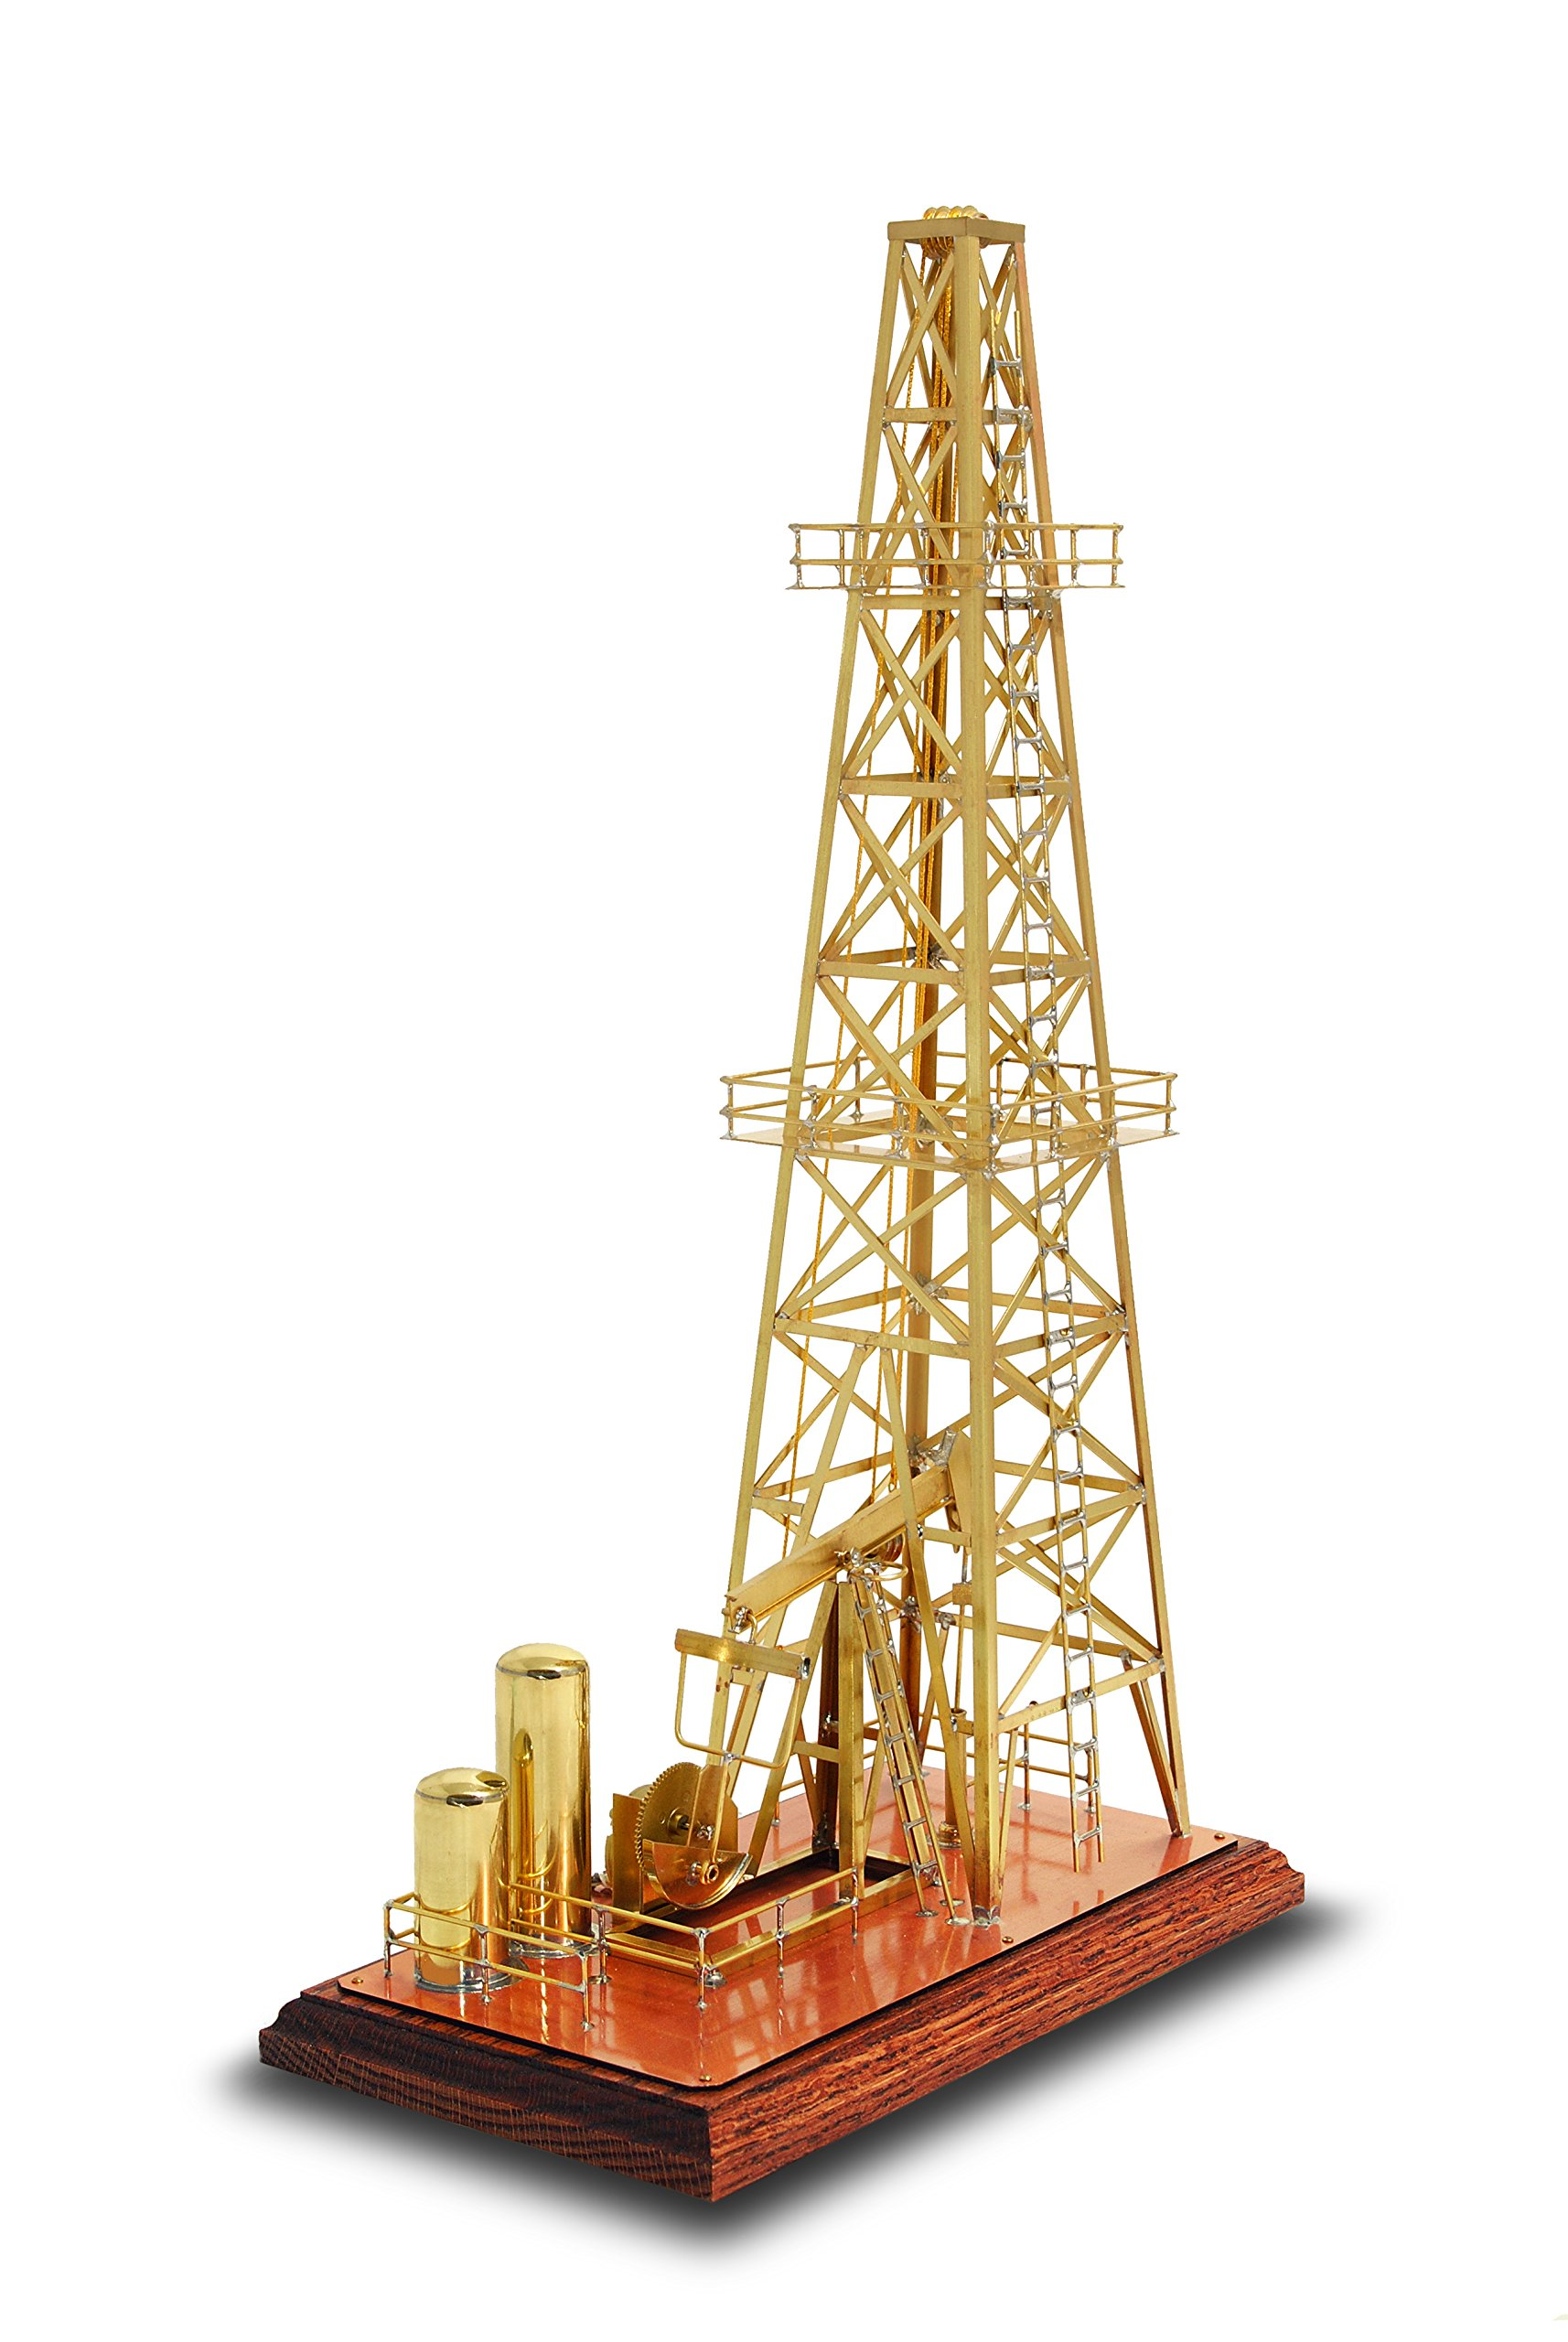 Solarts Oil Derrick OD-8 - Solar Powered Model/Executive Gift by Solar Made (Image #2)